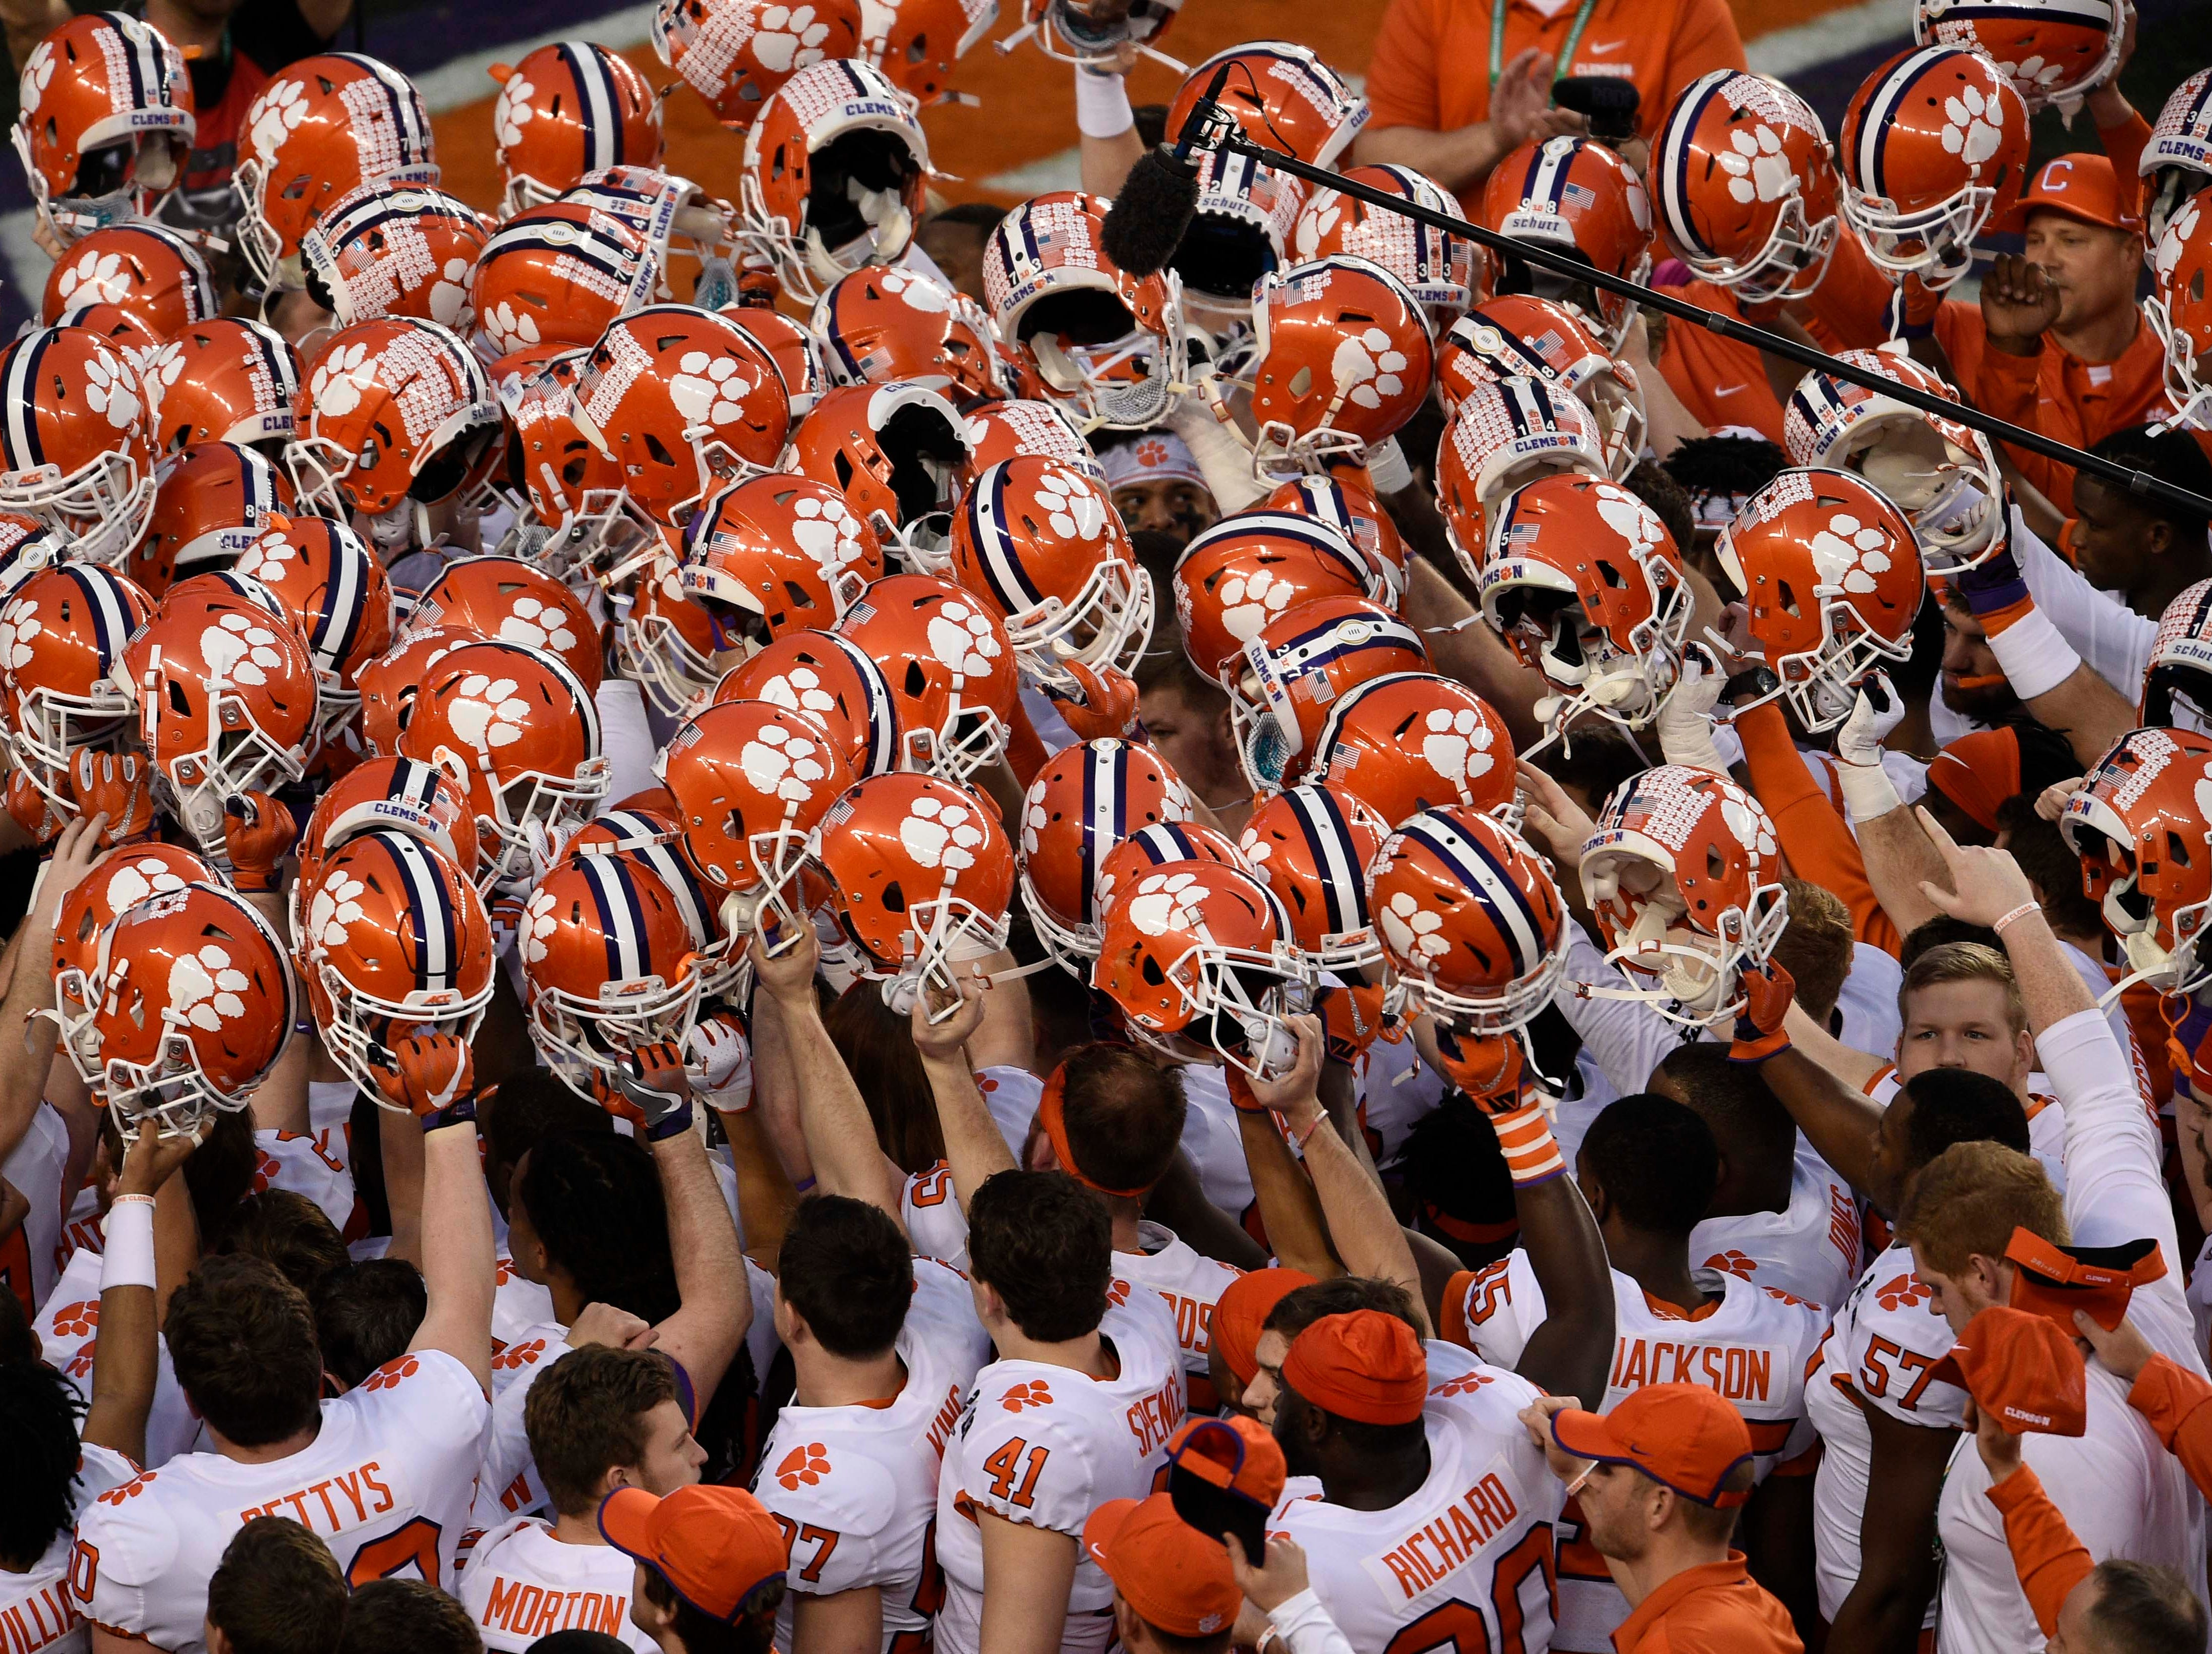 Clemson players raise their helmets before the game.